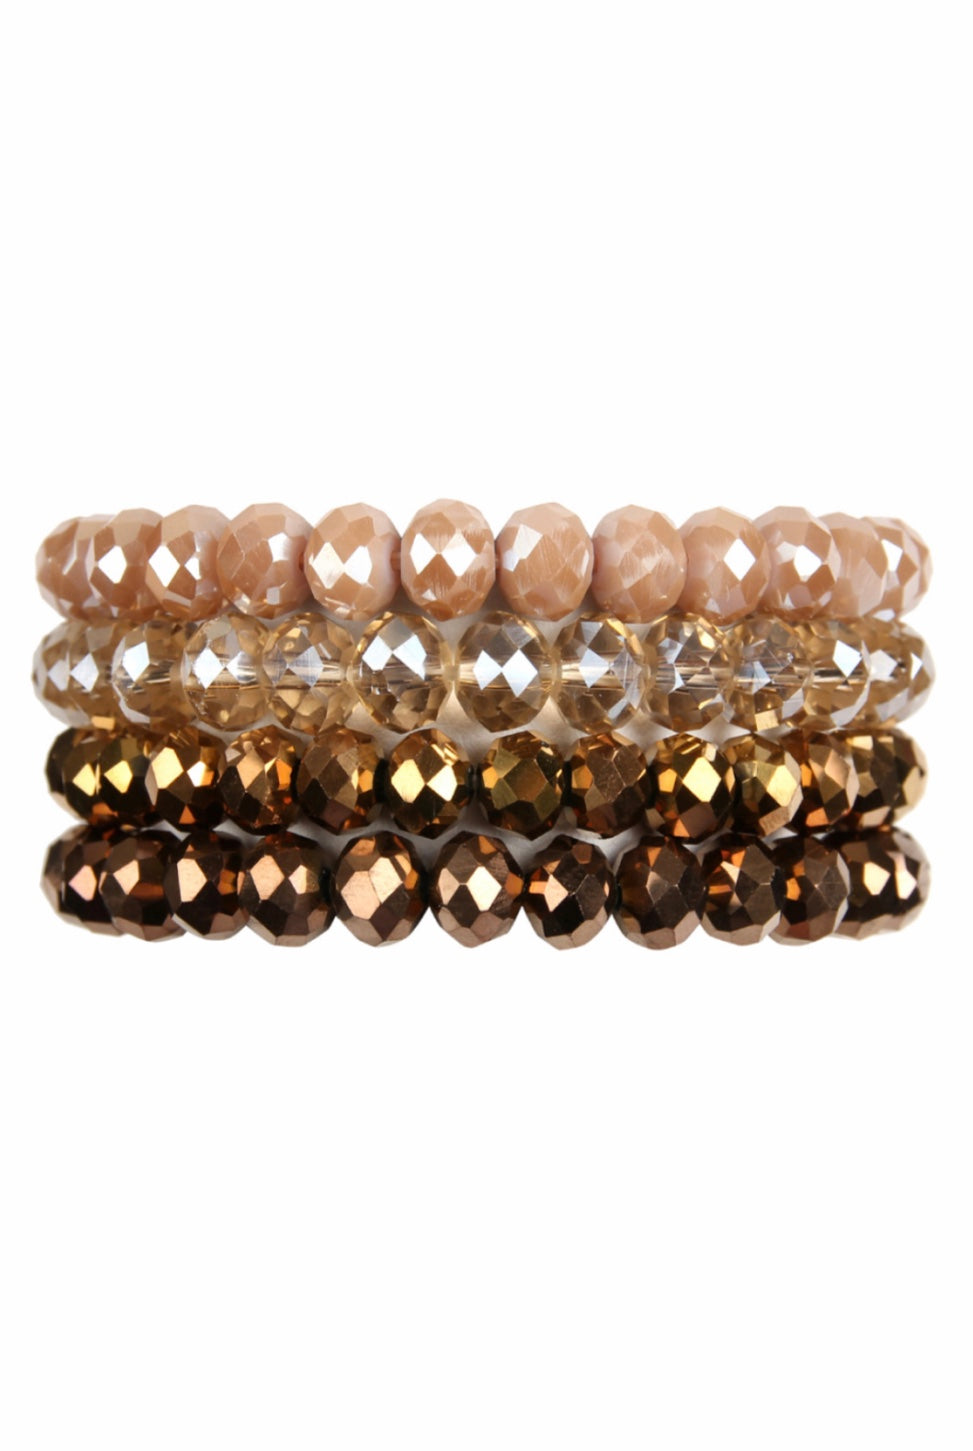 Sparkly Brown Glass Bead Stacked Bracelet